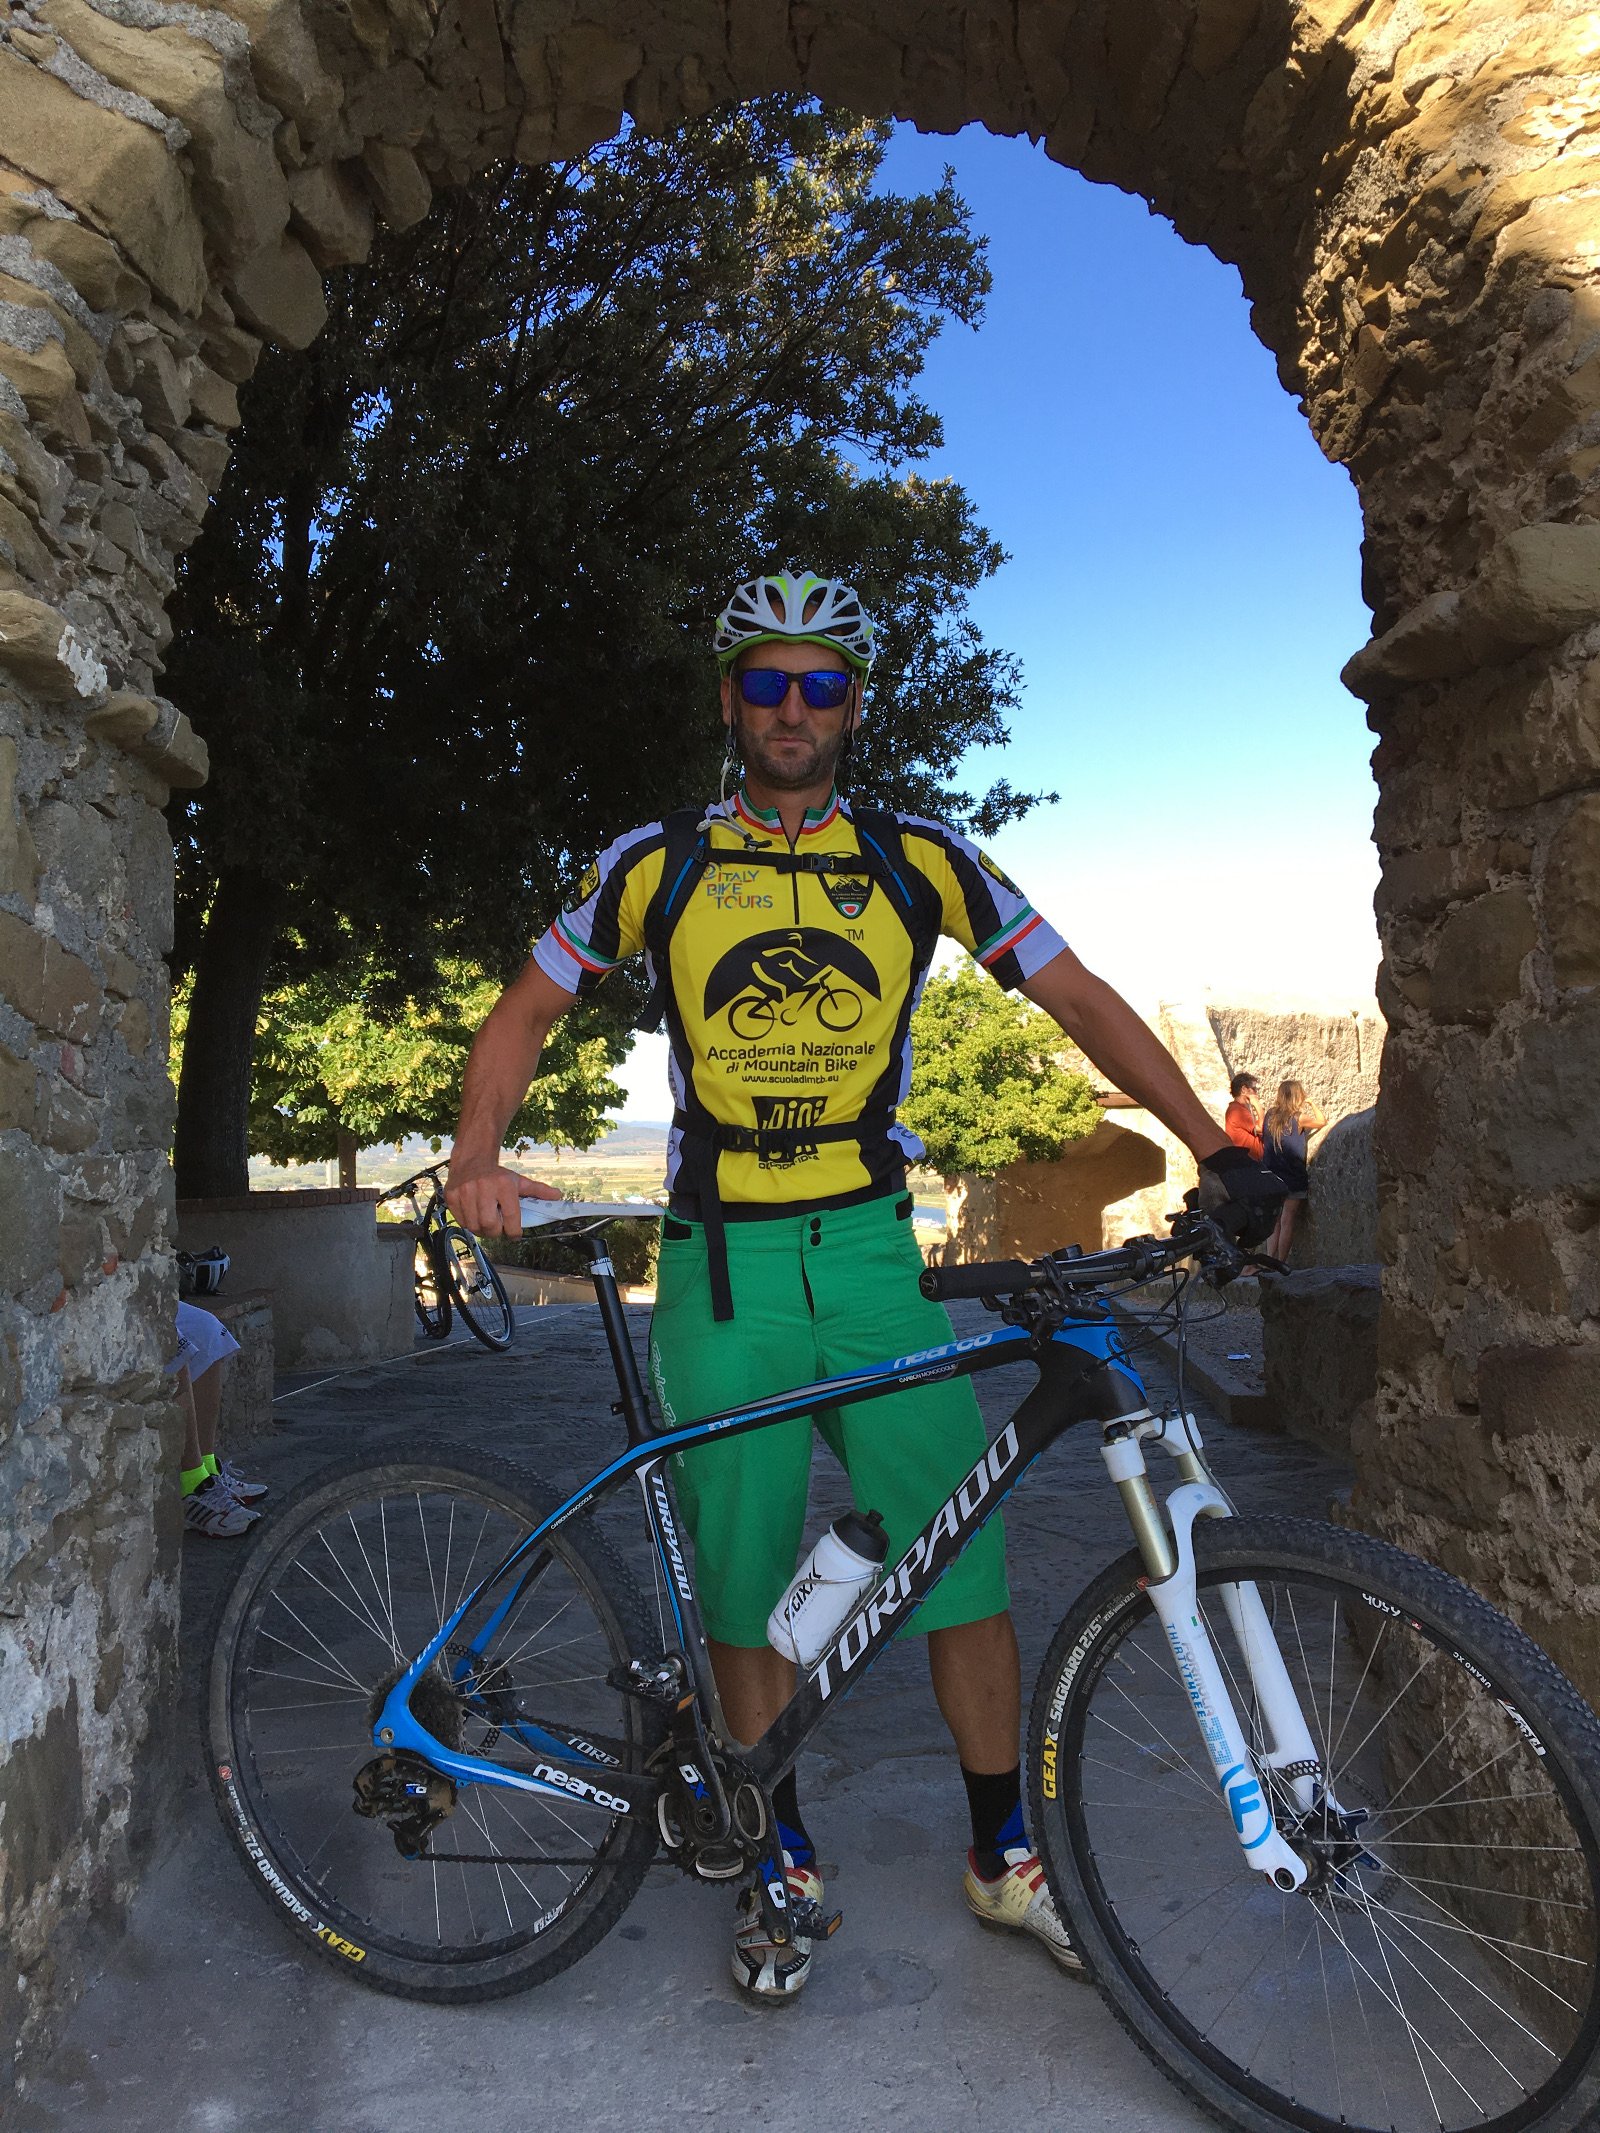 accompagnatore di mountain bike Emiliano Seri